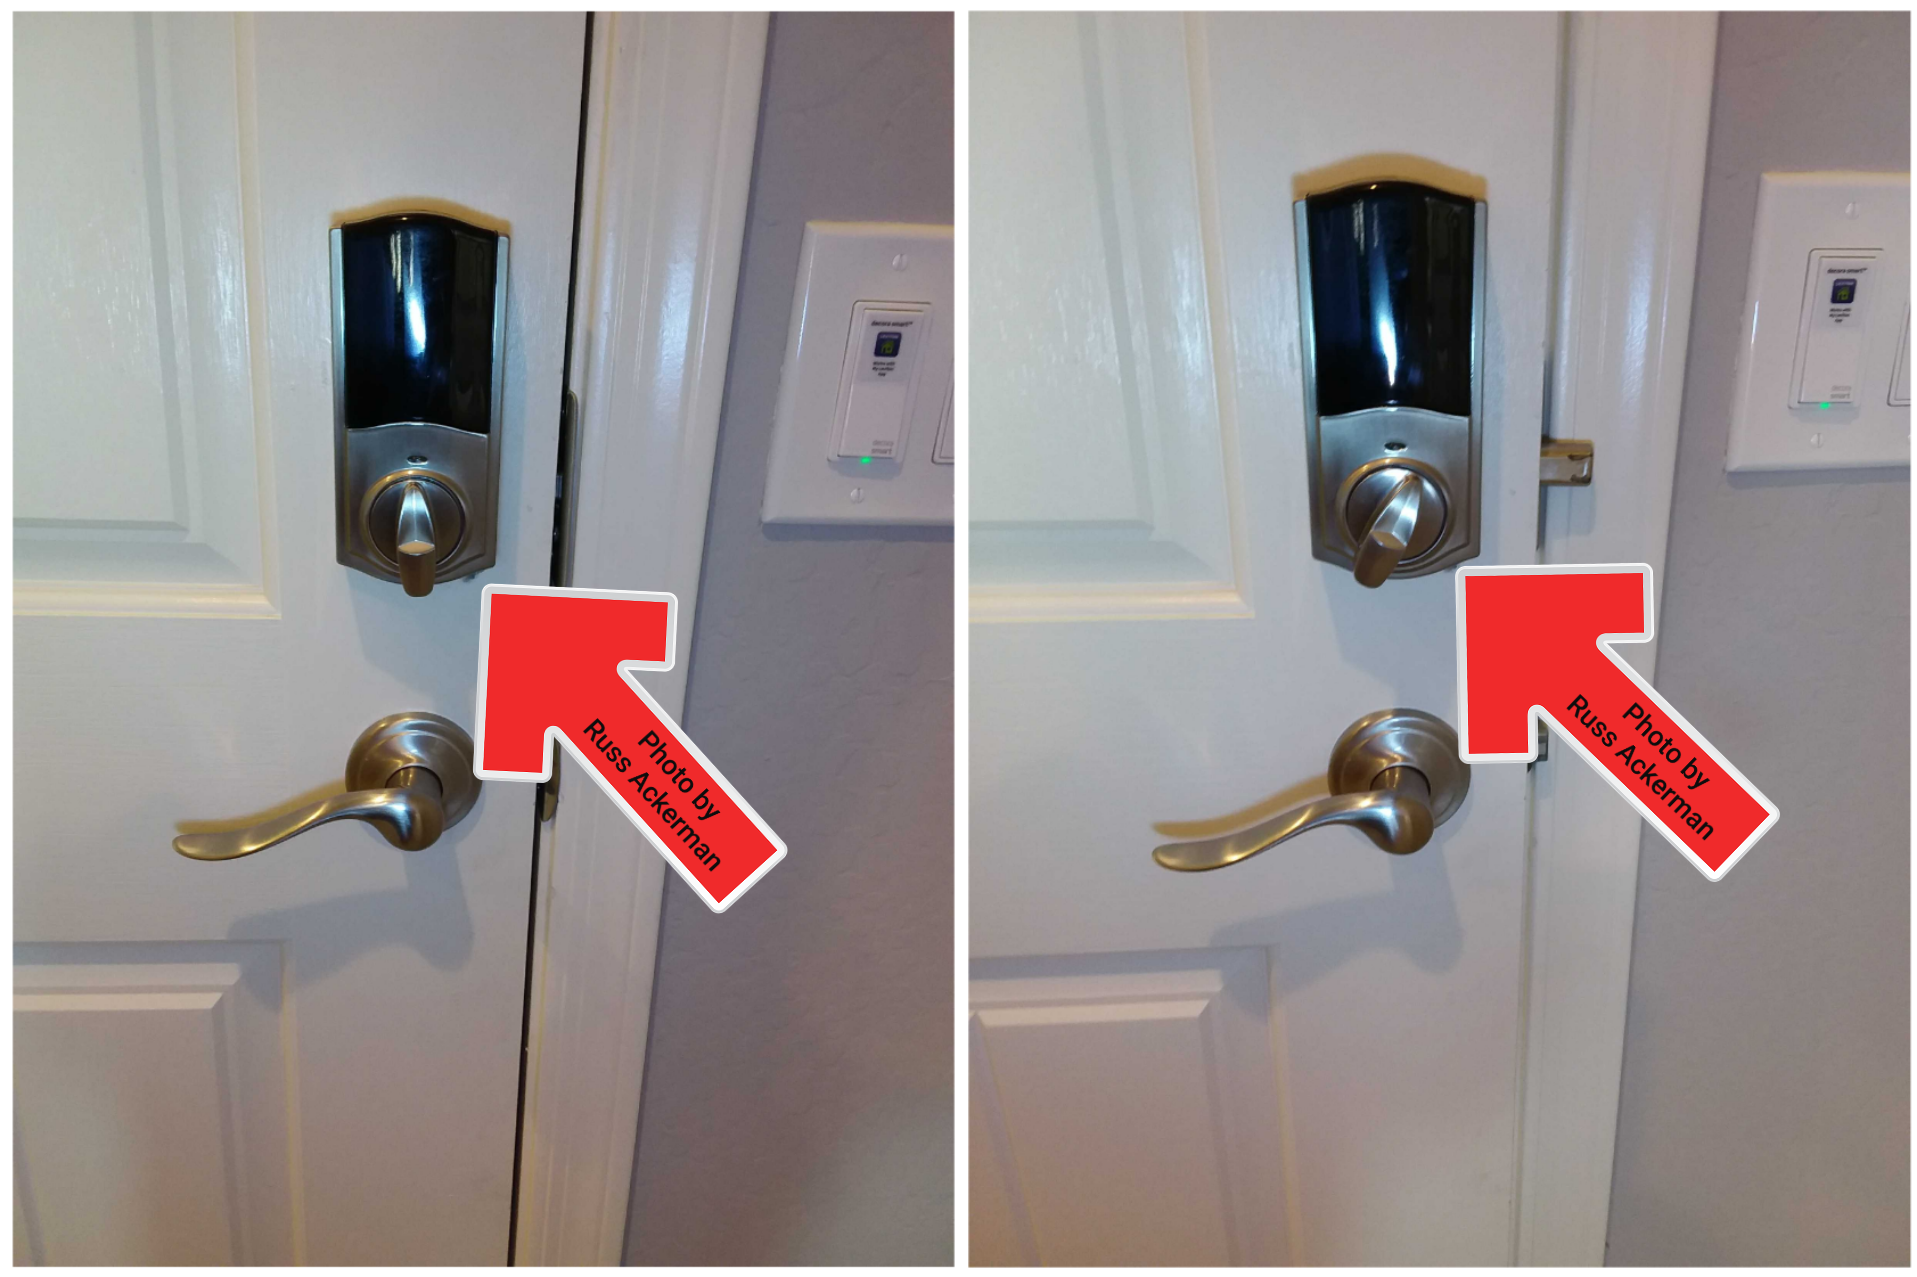 Many deadbolt latches do not fully latch. Boring the hole a little deeper will correct the issue.